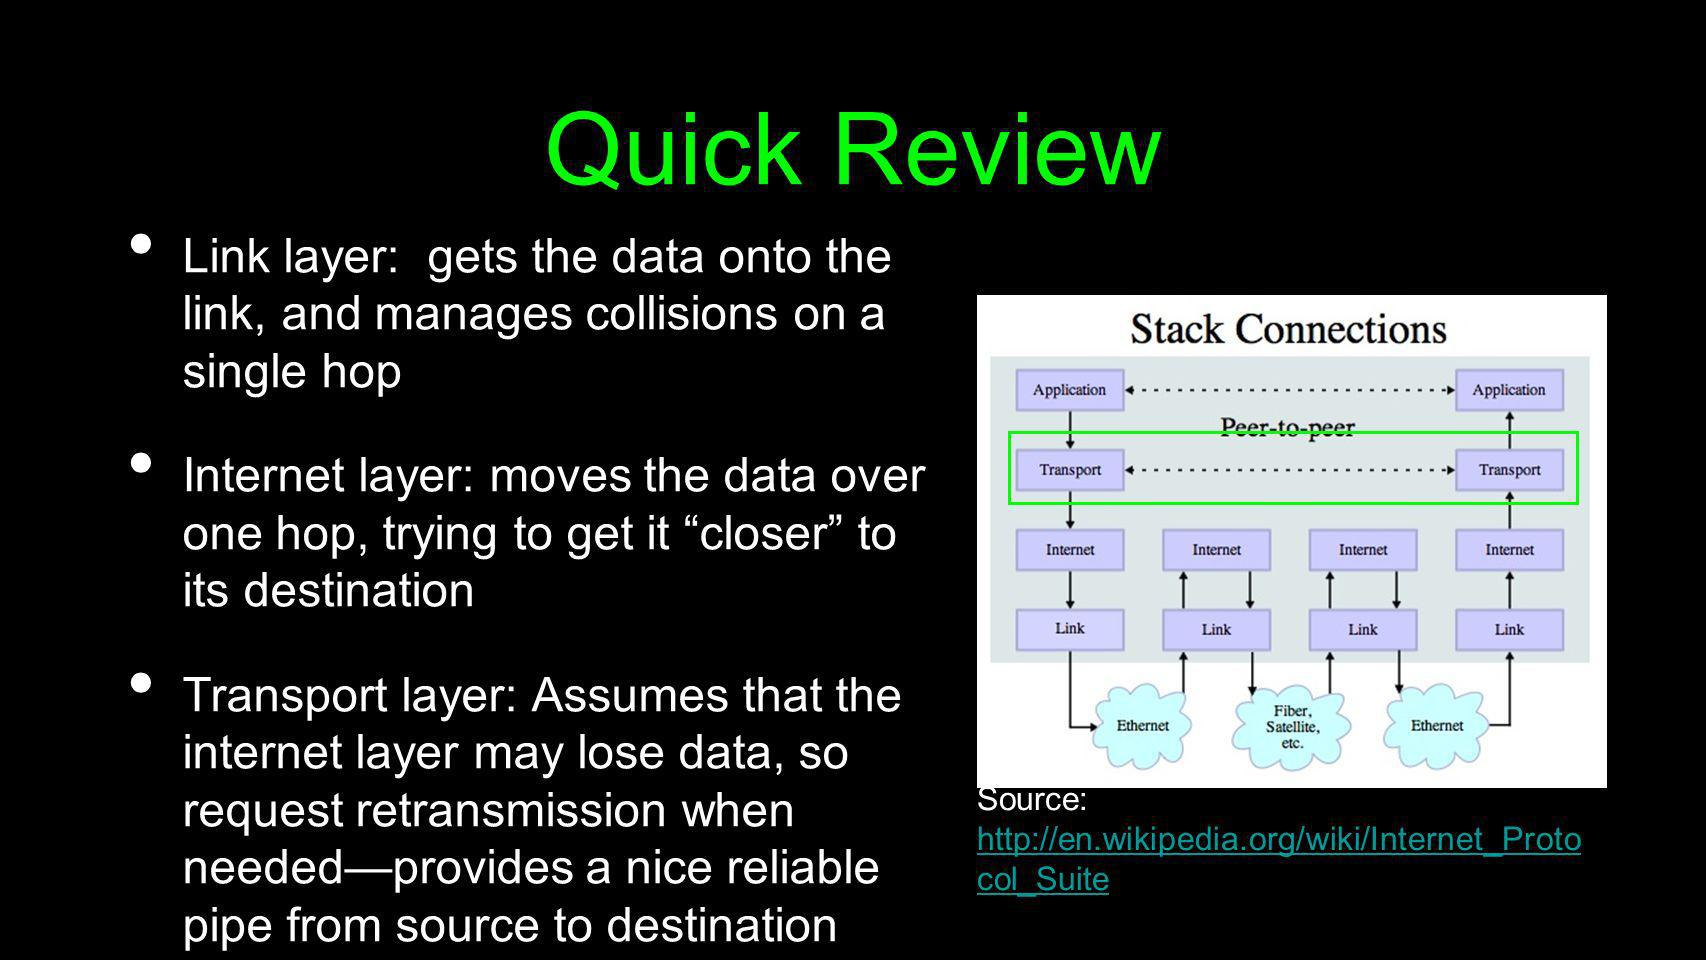 Quick Review Link layer: gets the data onto the link, and manages collisions on a single hop.